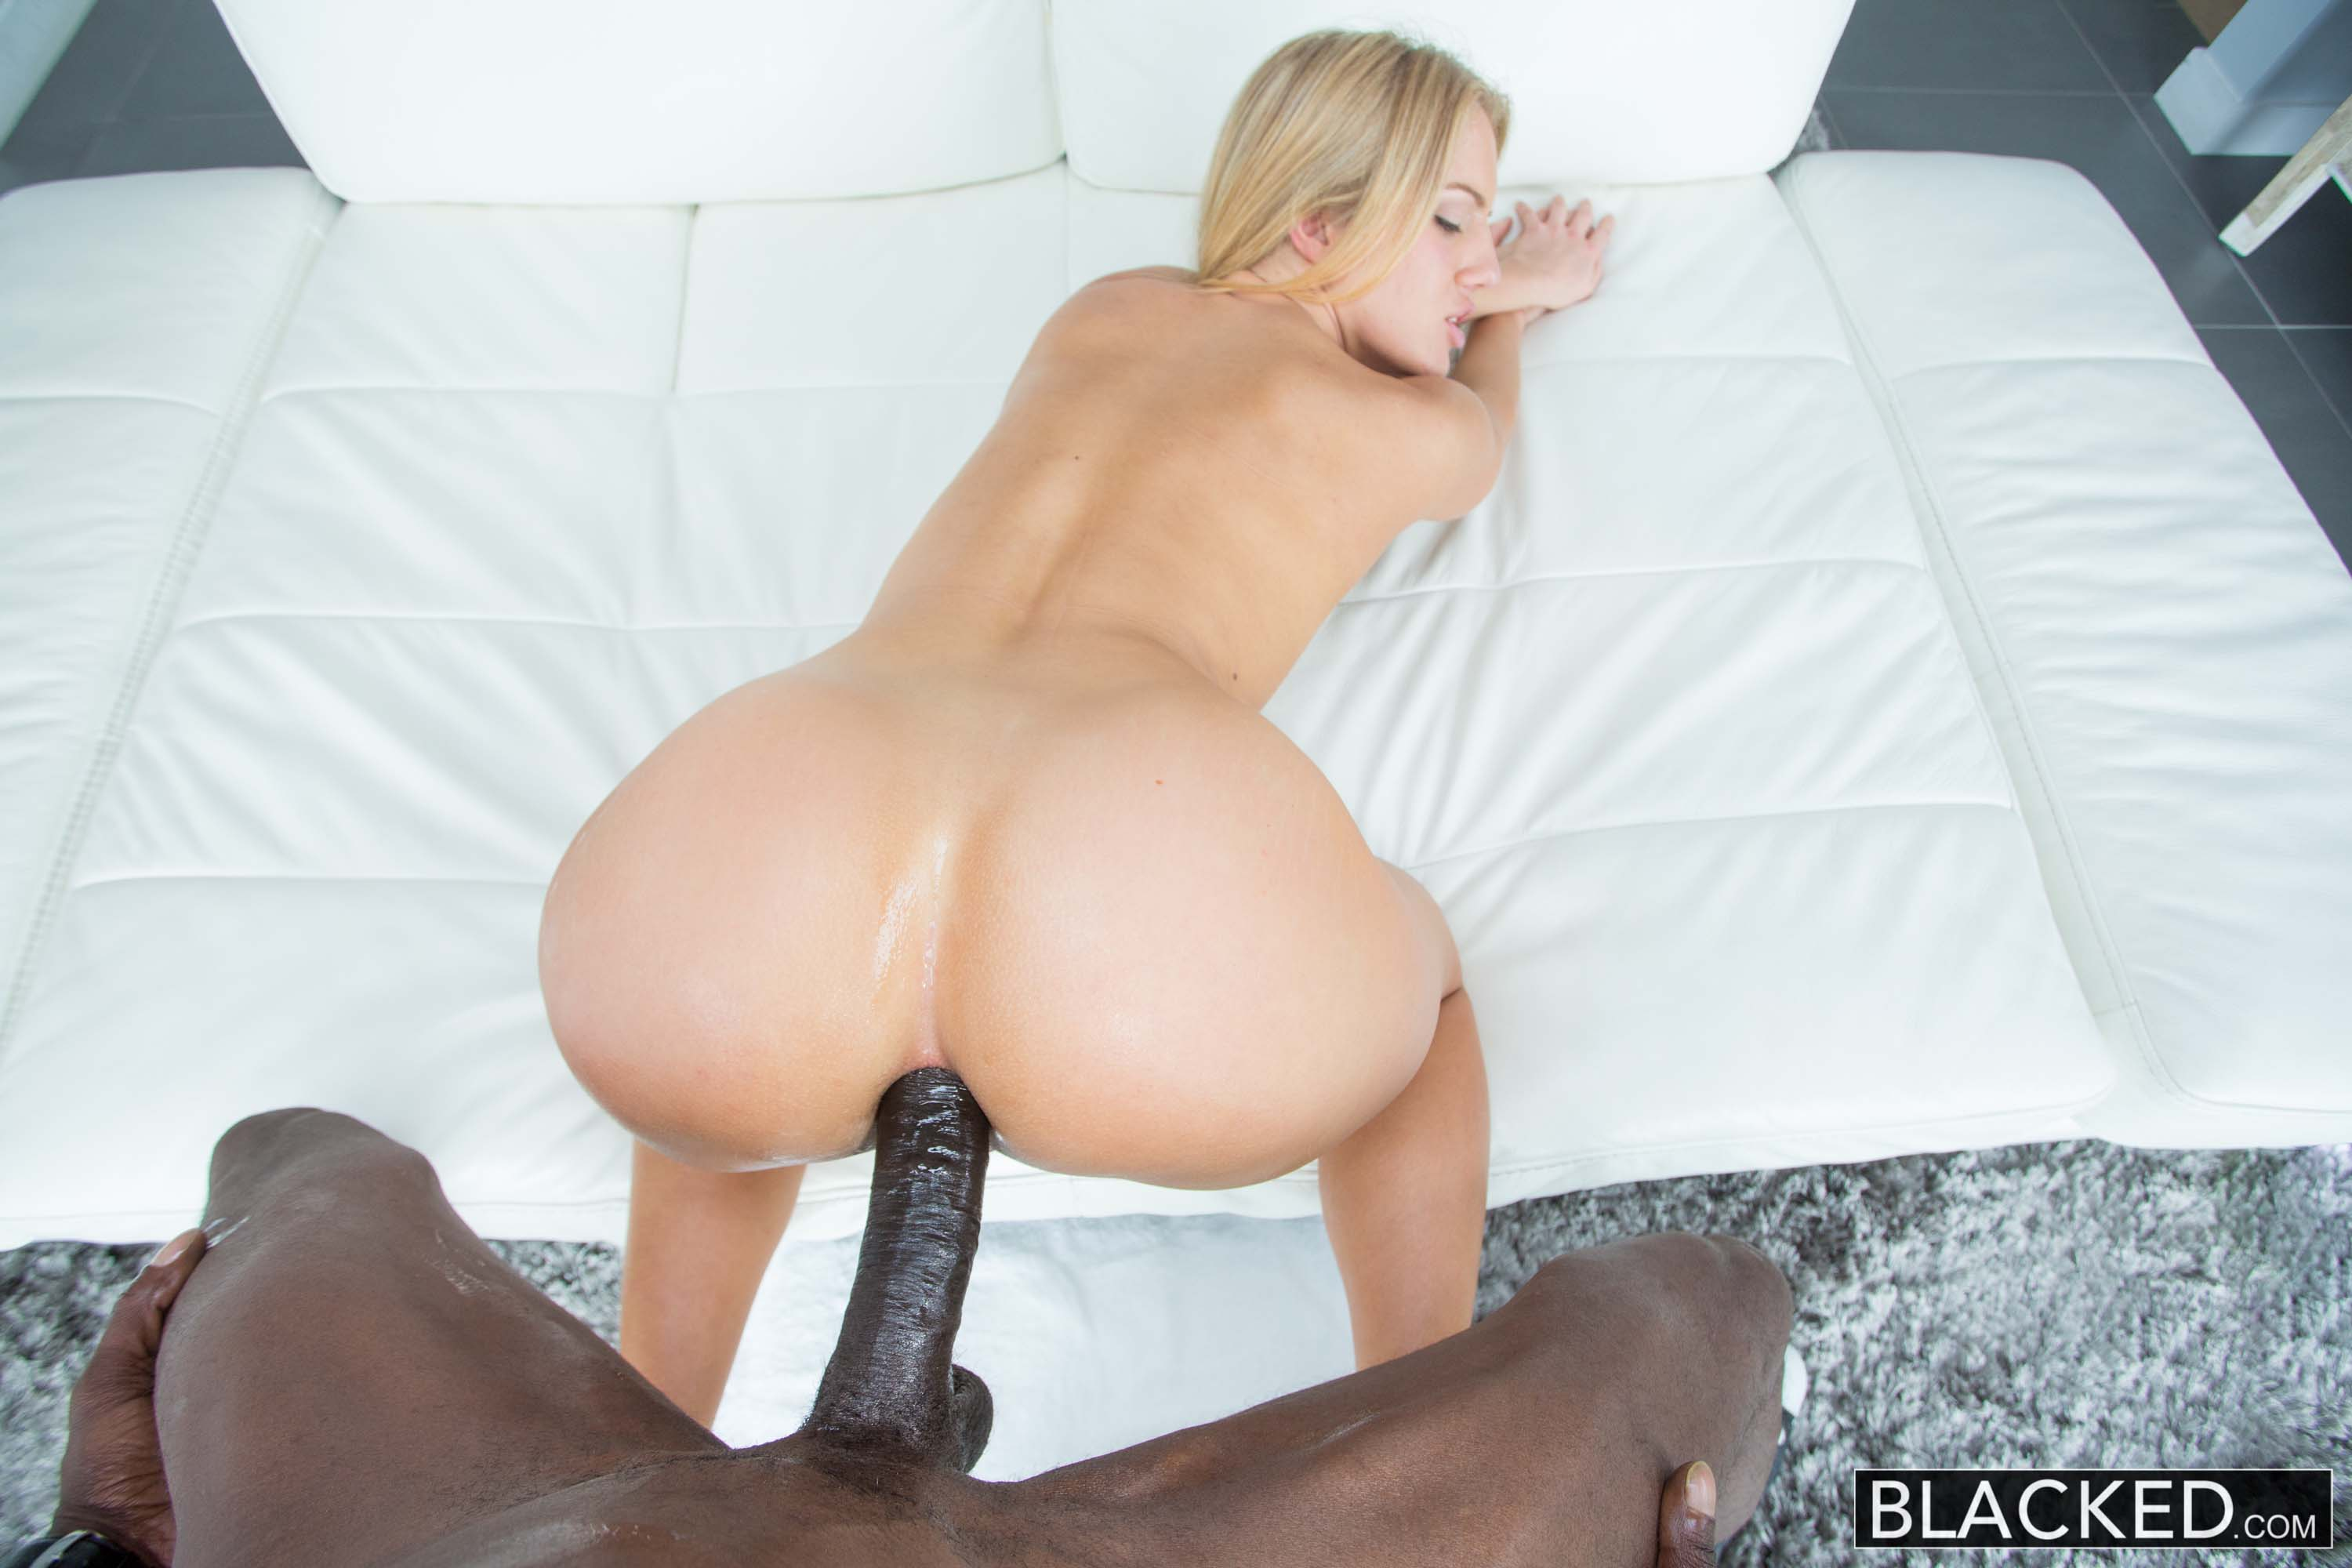 Wife cums within 30 seconds of first bbc - 66 part 9